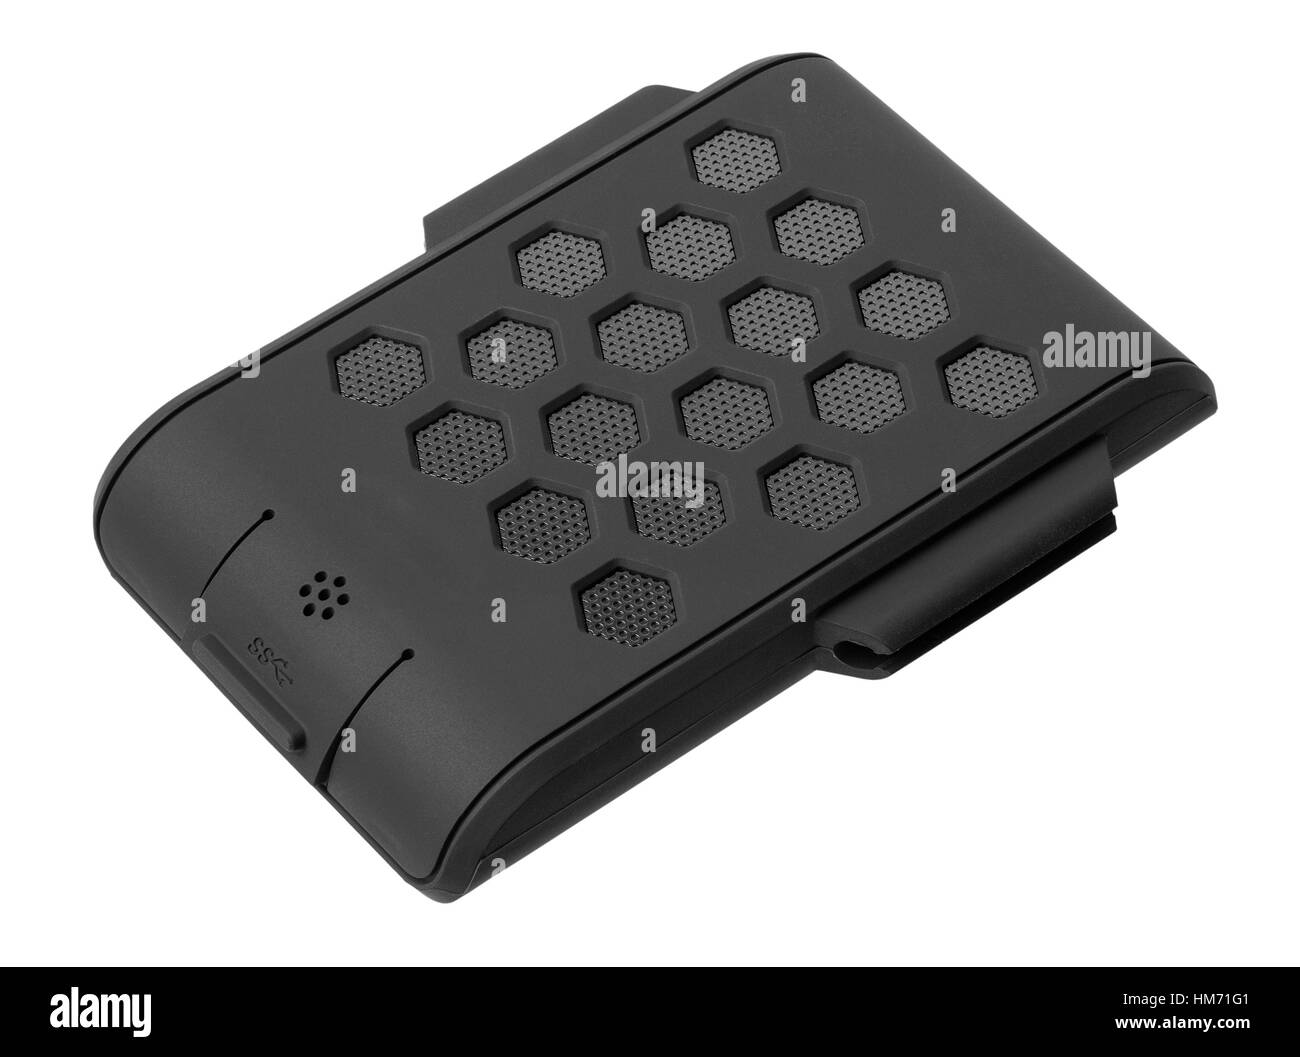 The protected portable hard drive of black color on a white background - Stock Image